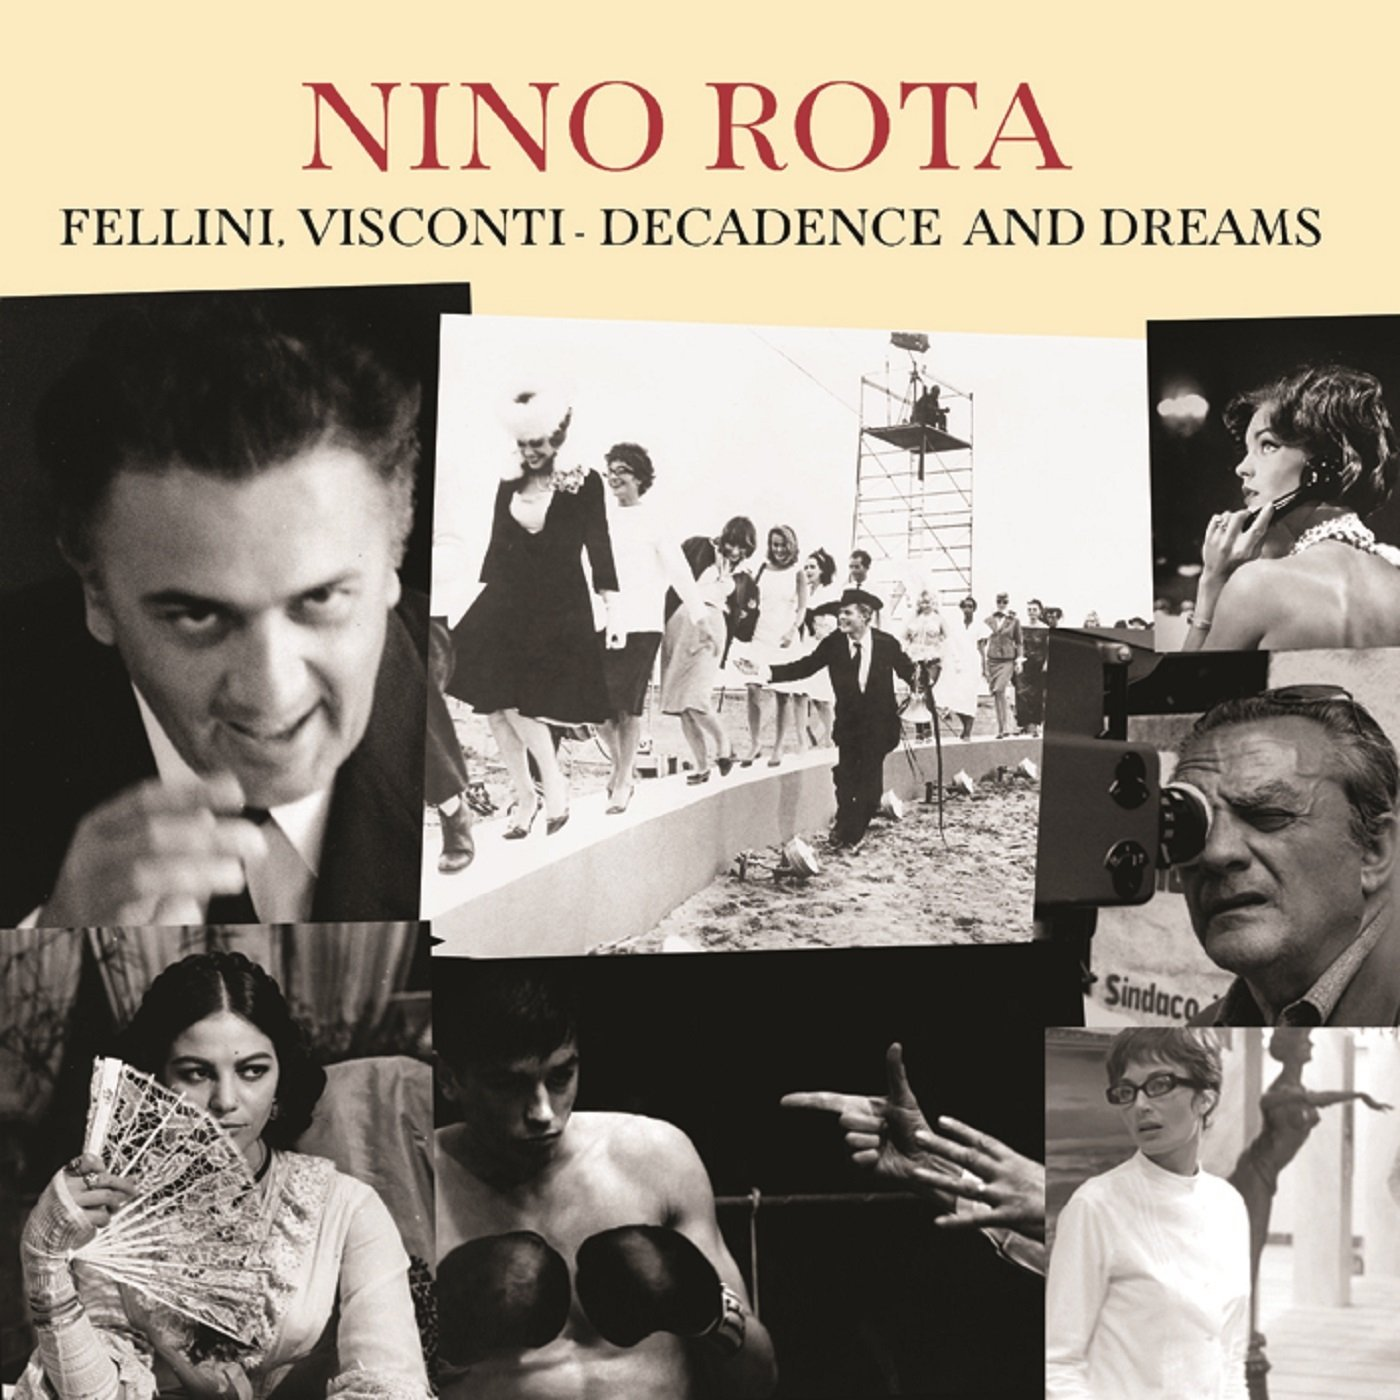 Nino Rota - Fellini, Visconti - Decadence and dreams